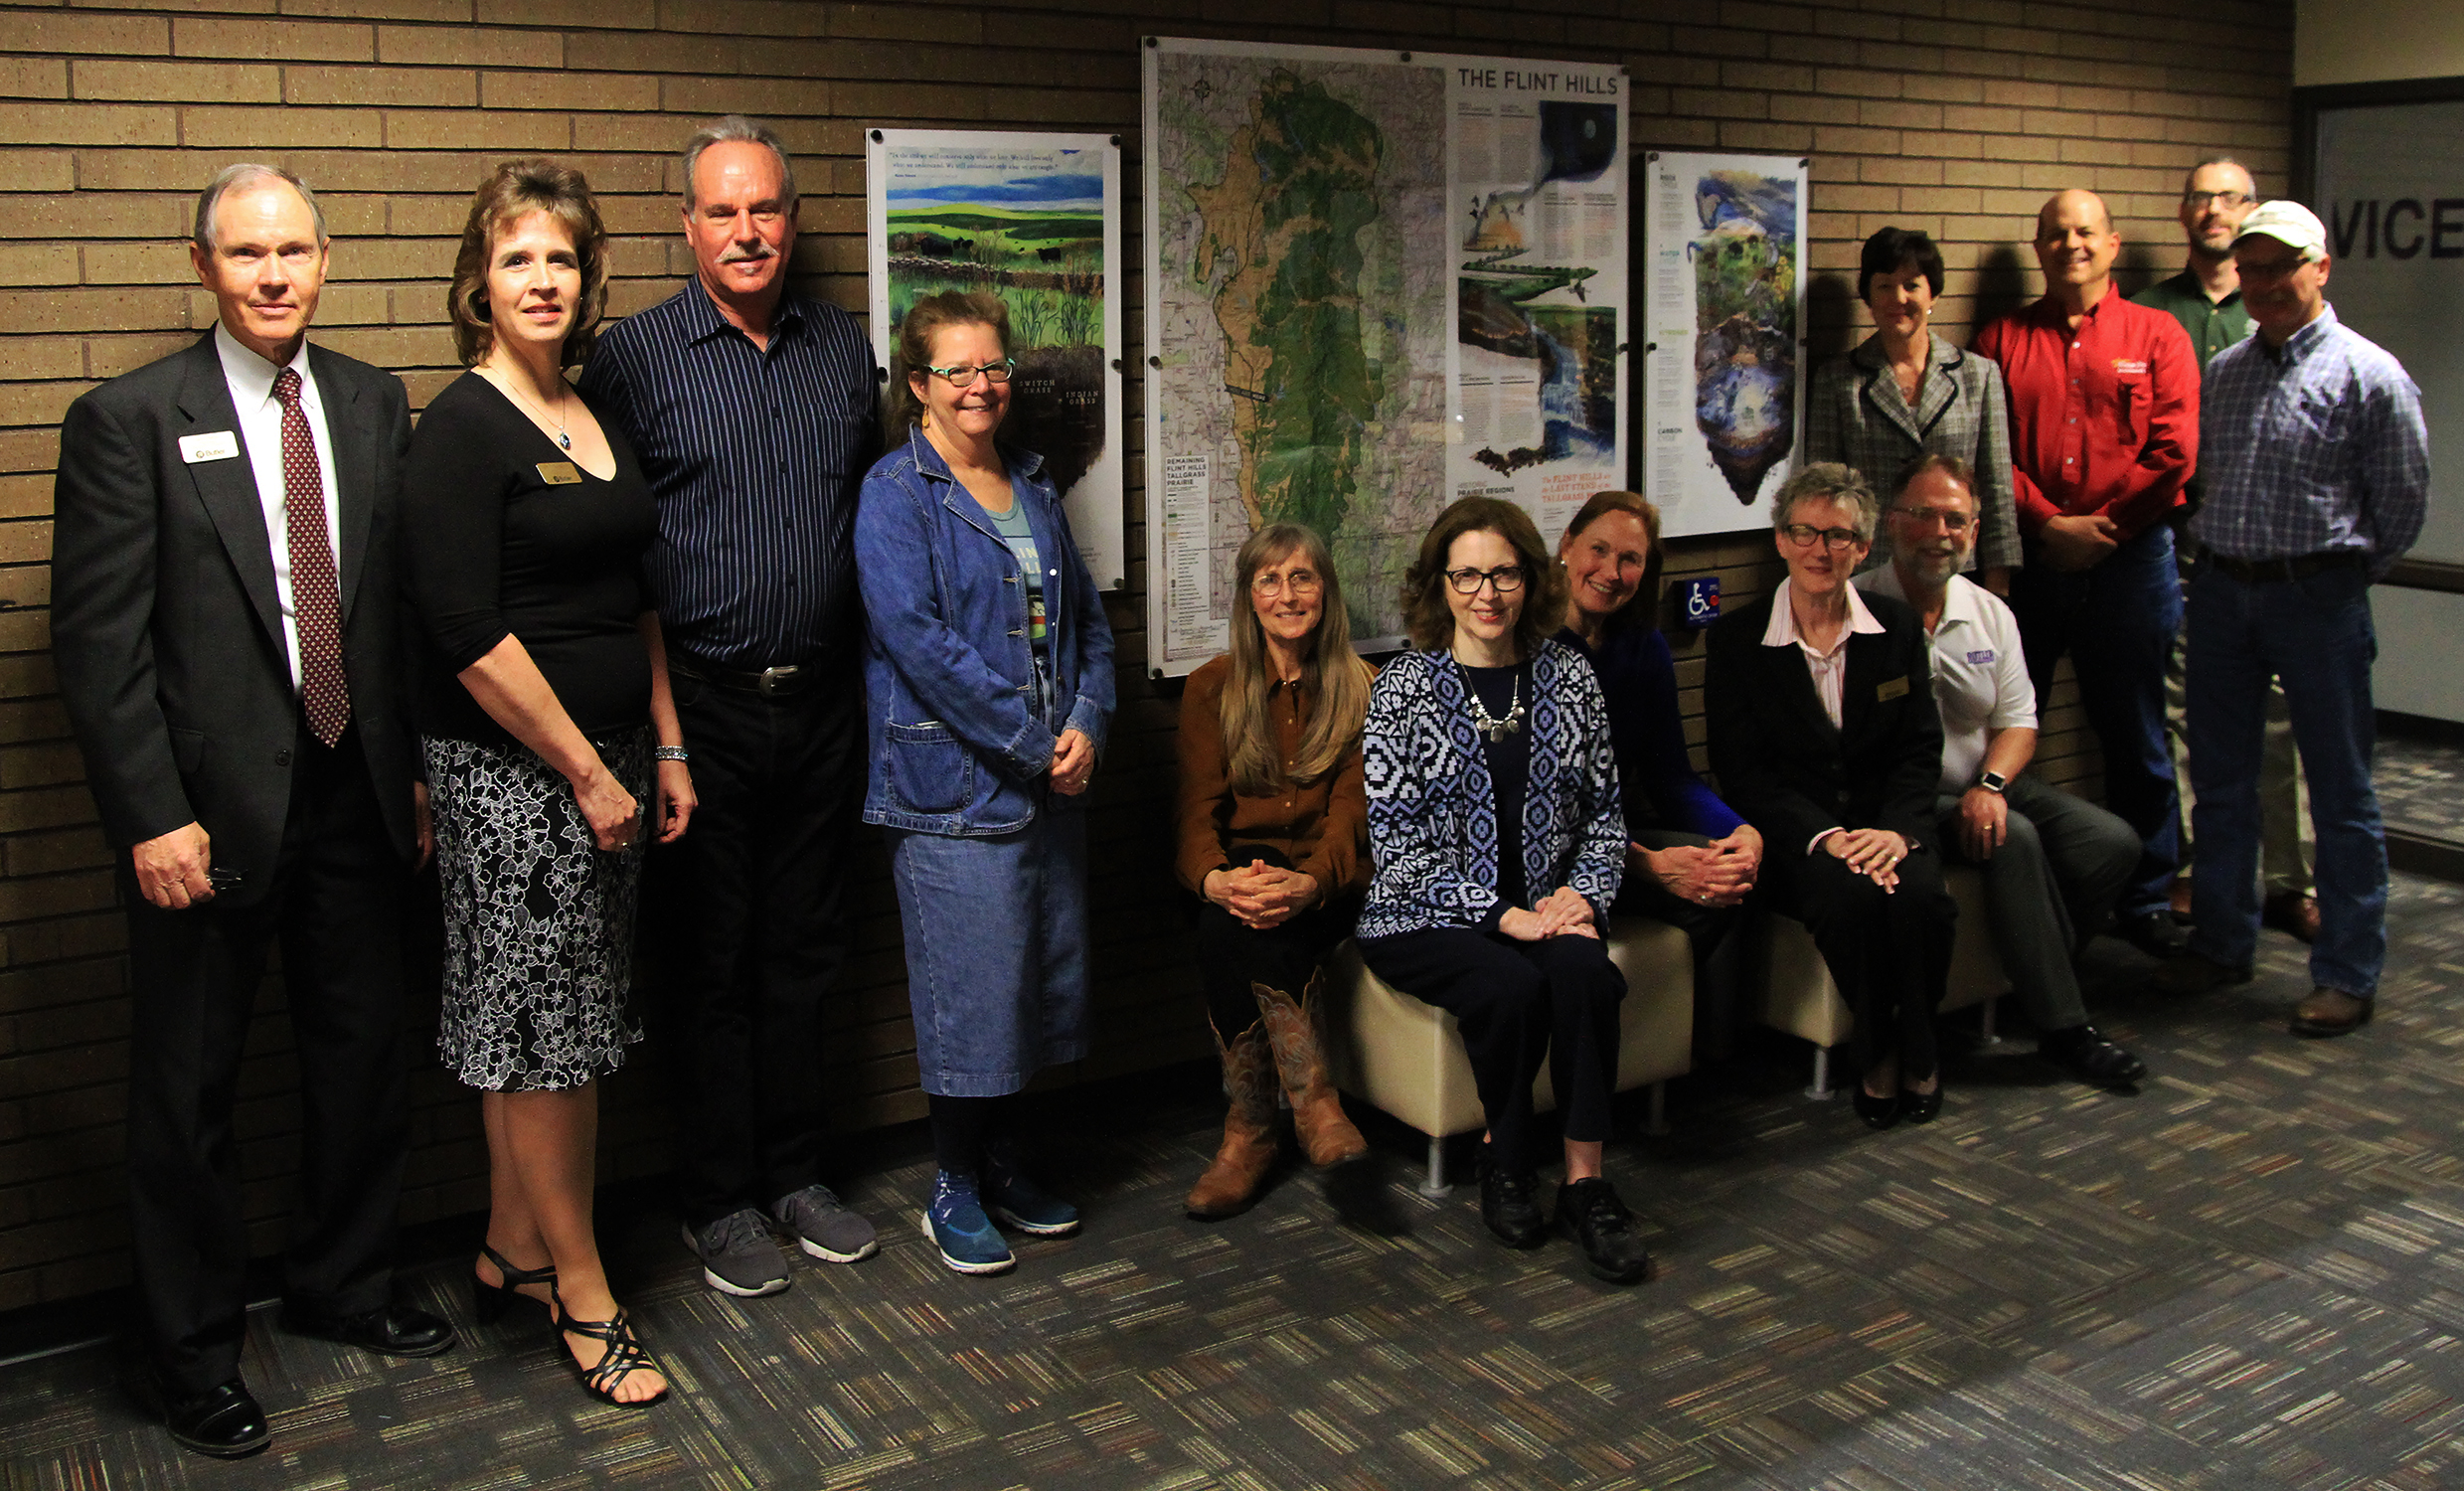 Flint hills map ceremony attendees